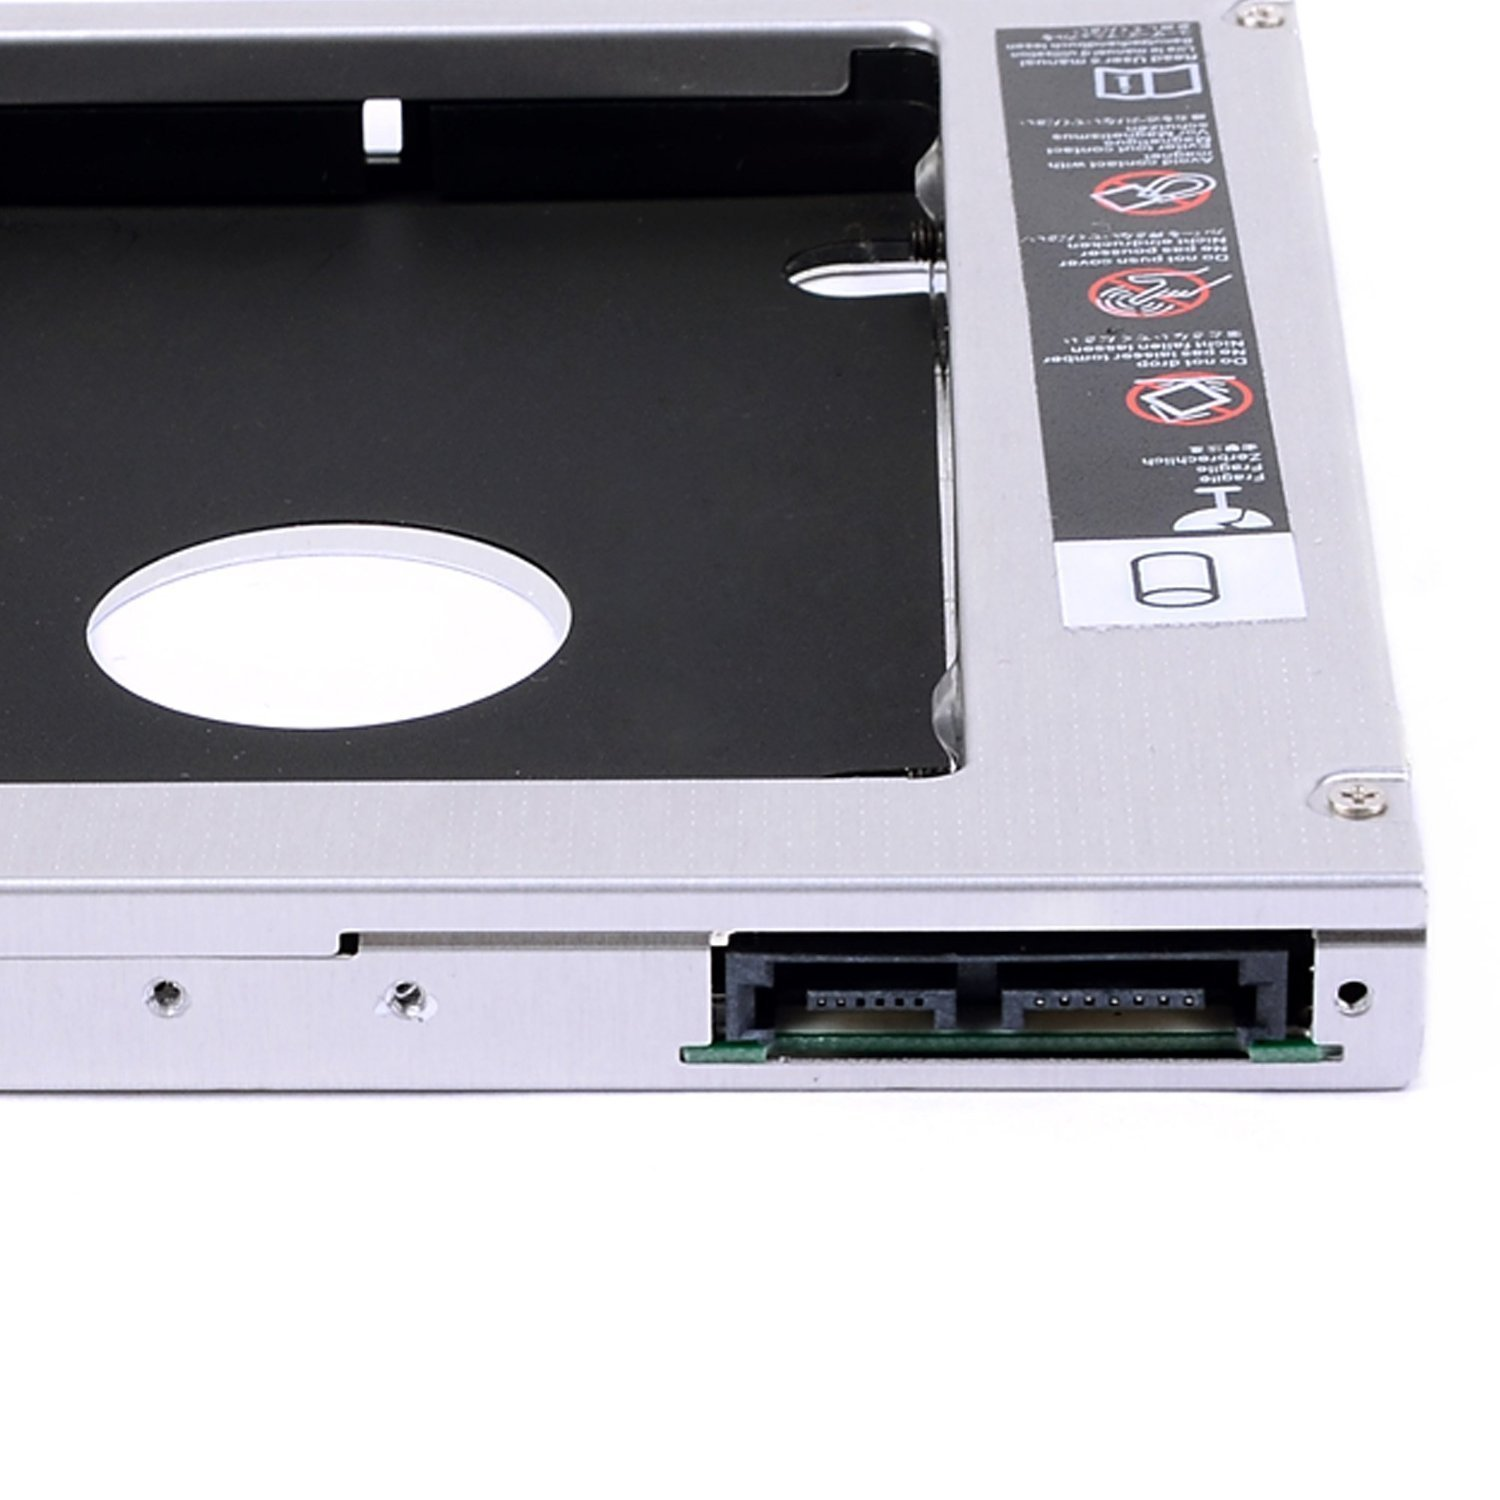 WoneNice NEW SATA 2nd HDD caddy for 9.5mm Universal CD/DVD-ROM ACER BENQ HP DELL ASUS by WoneNice (Image #3)